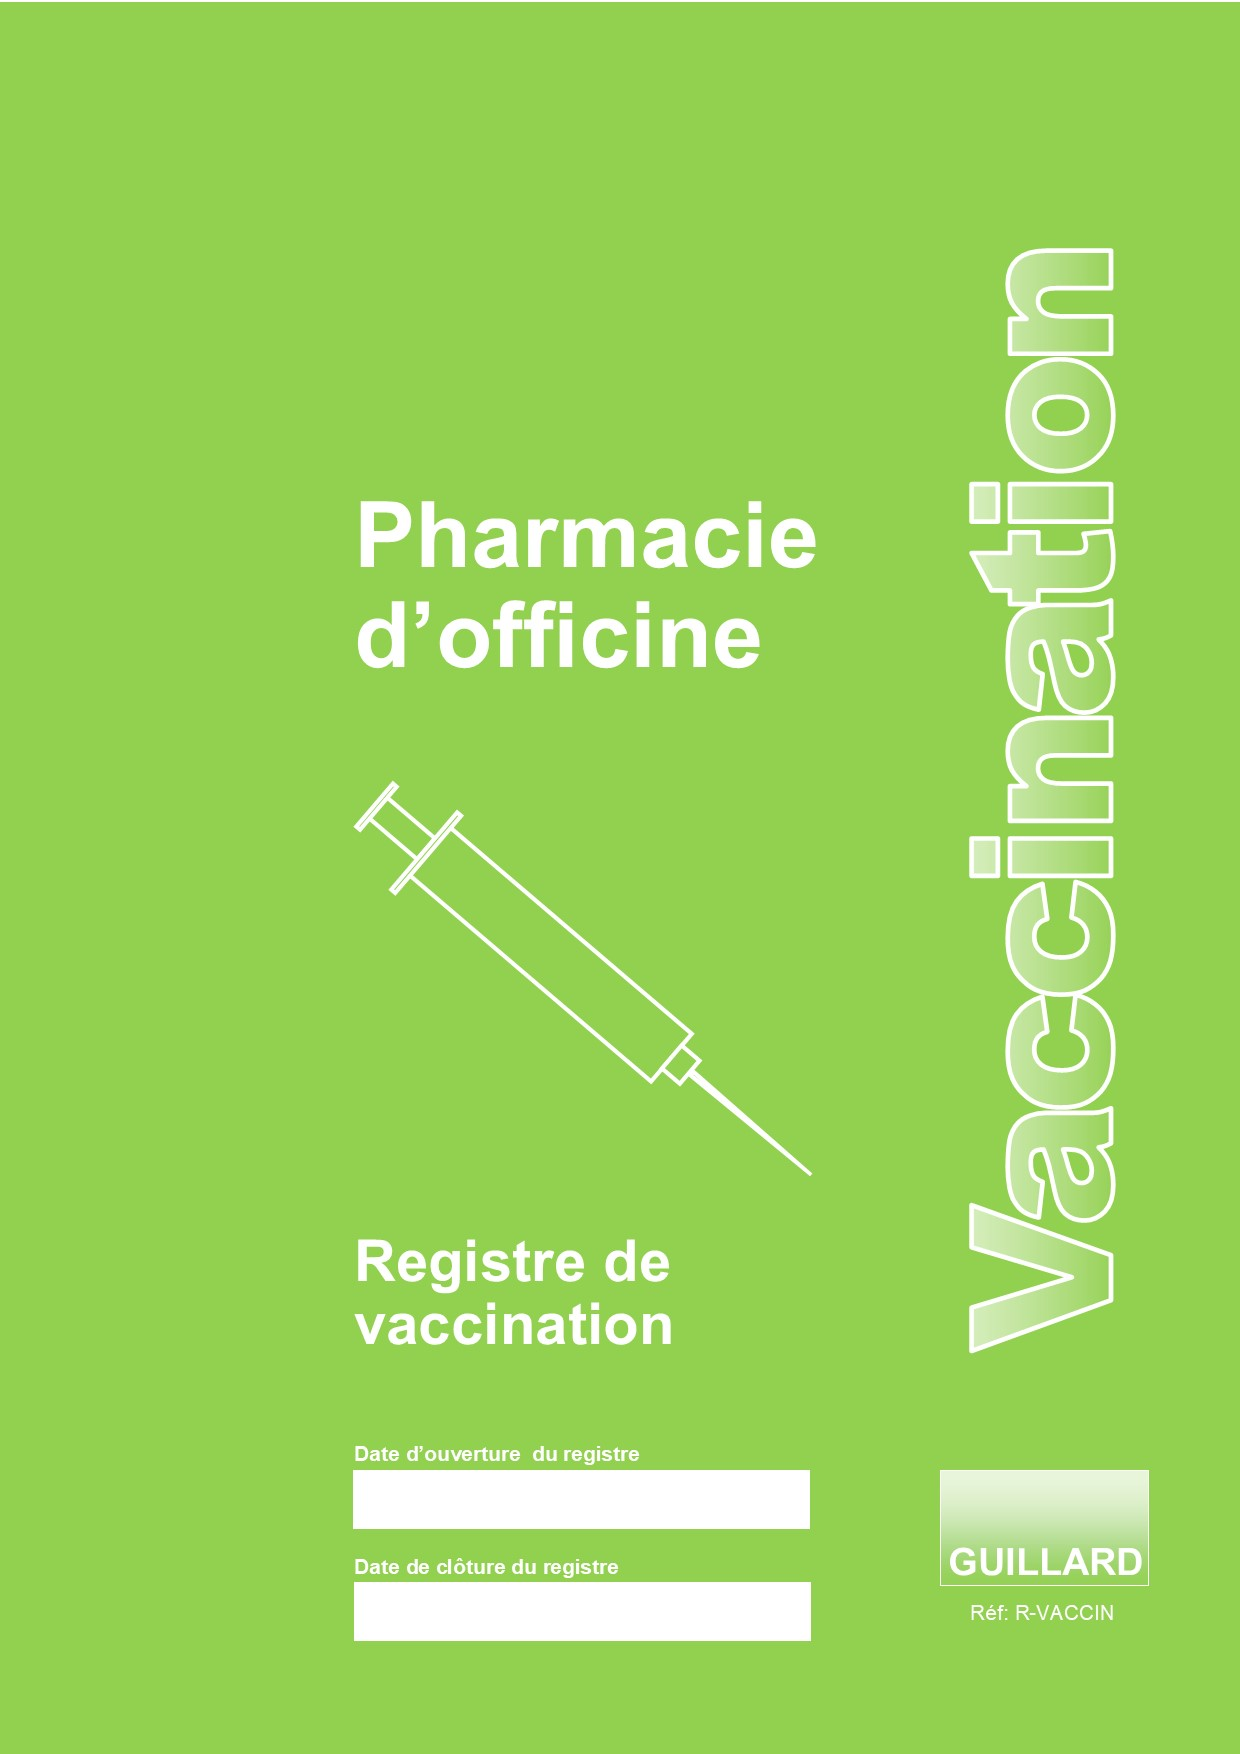 PHARMACIE Registre des VACCINATIONS en PHARMACIE D'OFFICINE - R.VACCIN